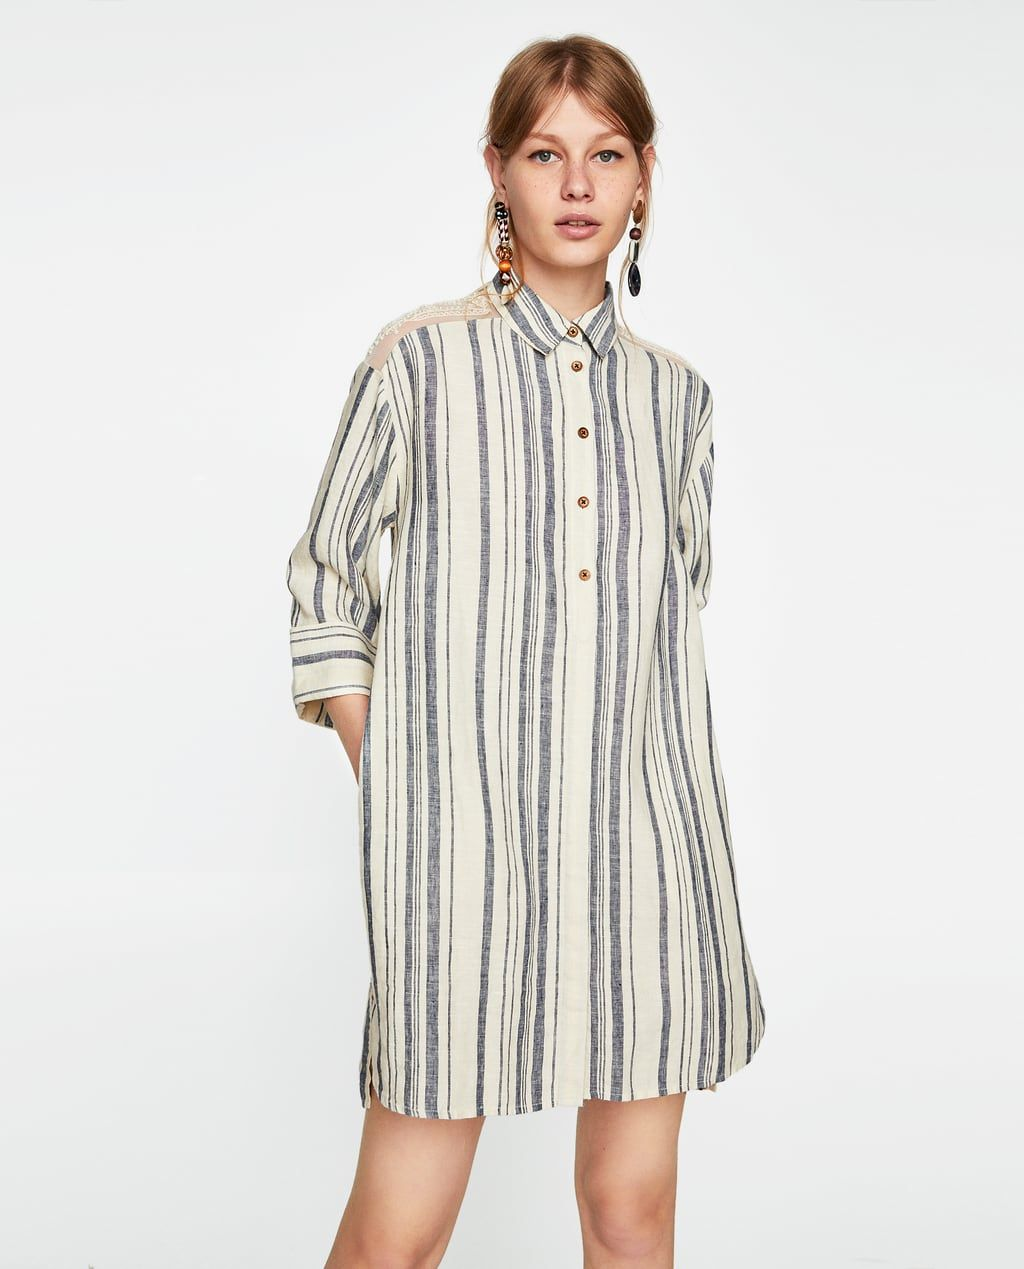 ae80ad18df STRIPED LINEN DRESS from Zara